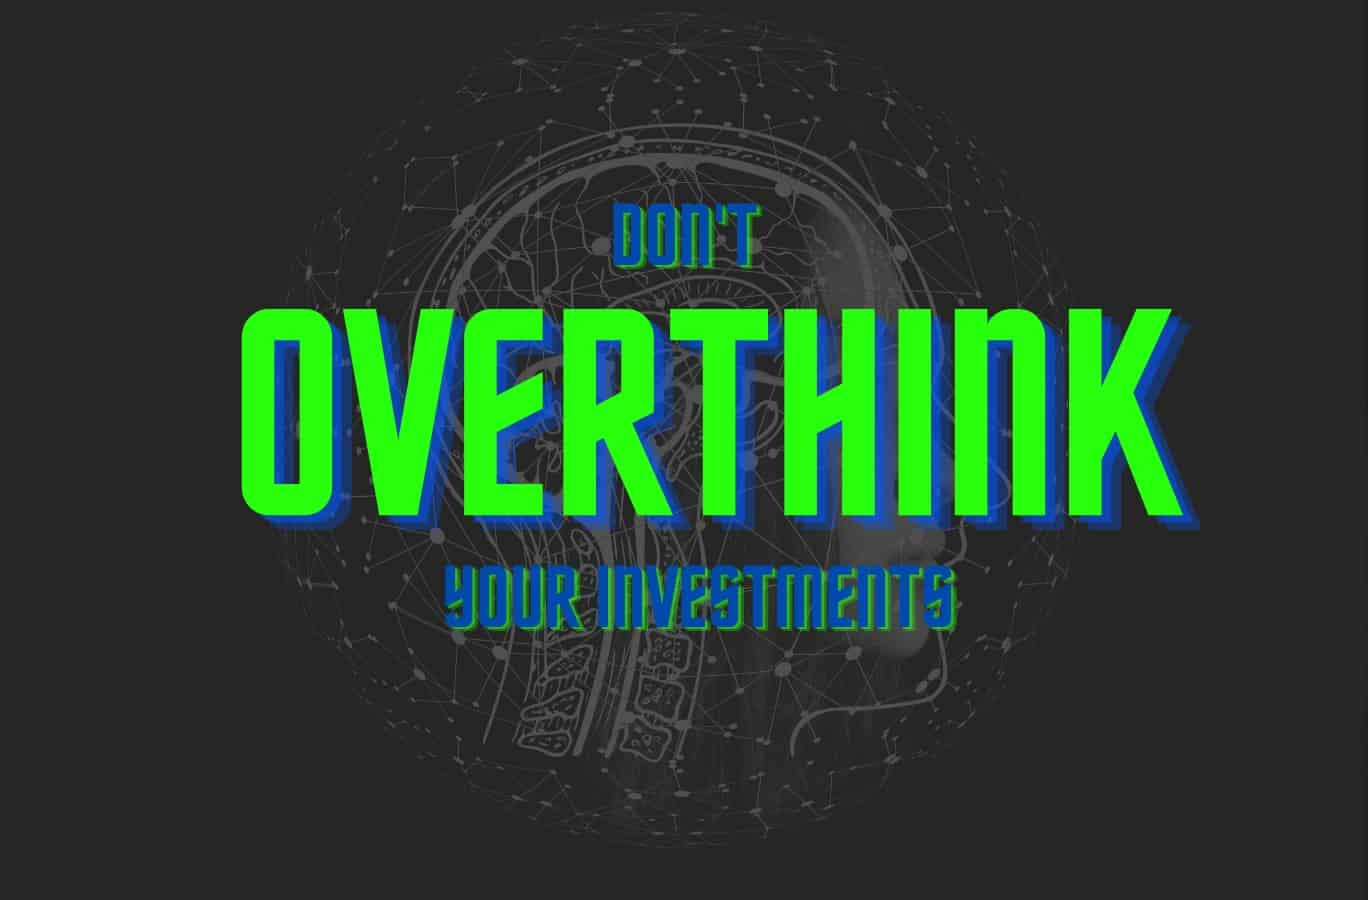 Don't overthink your investments